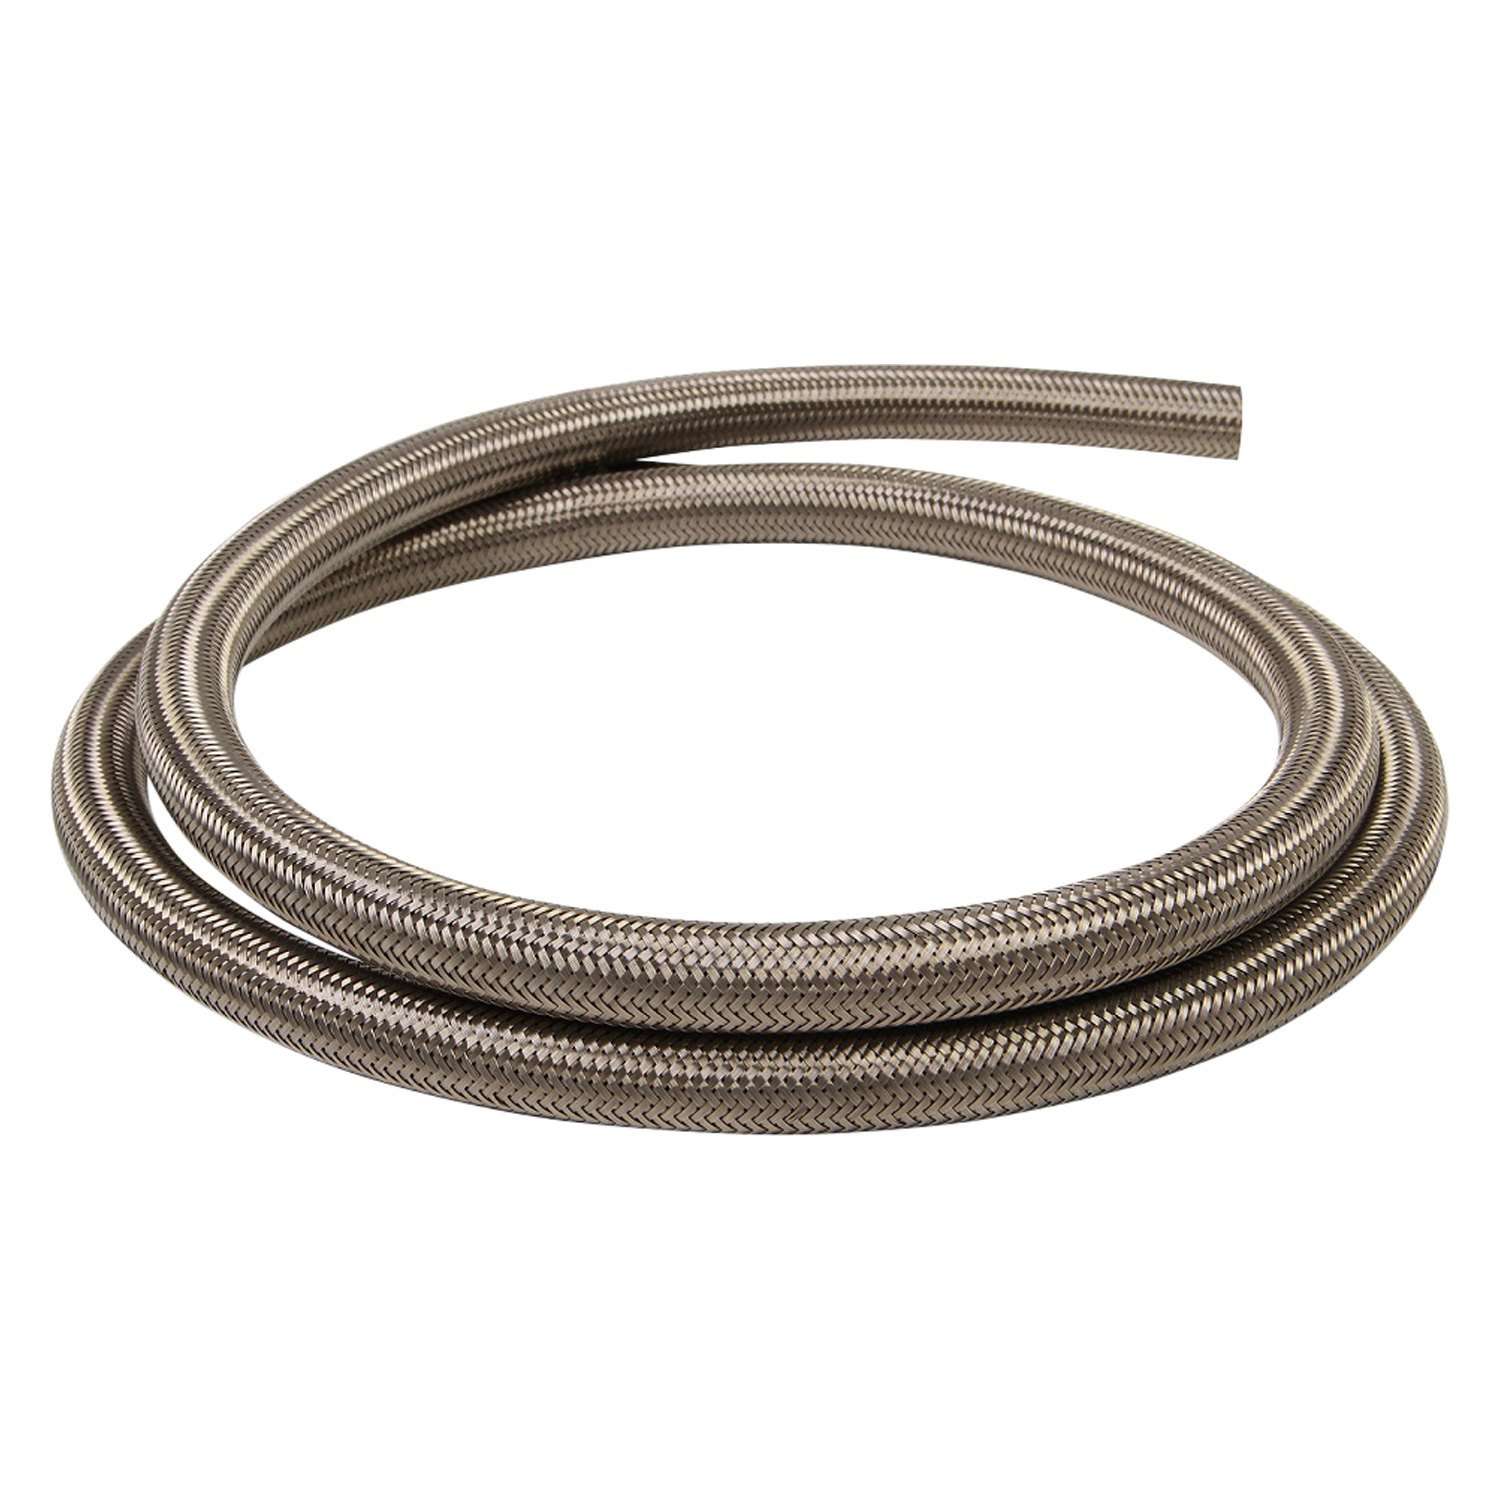 Earl s performance convoluted stainless steel braided hose